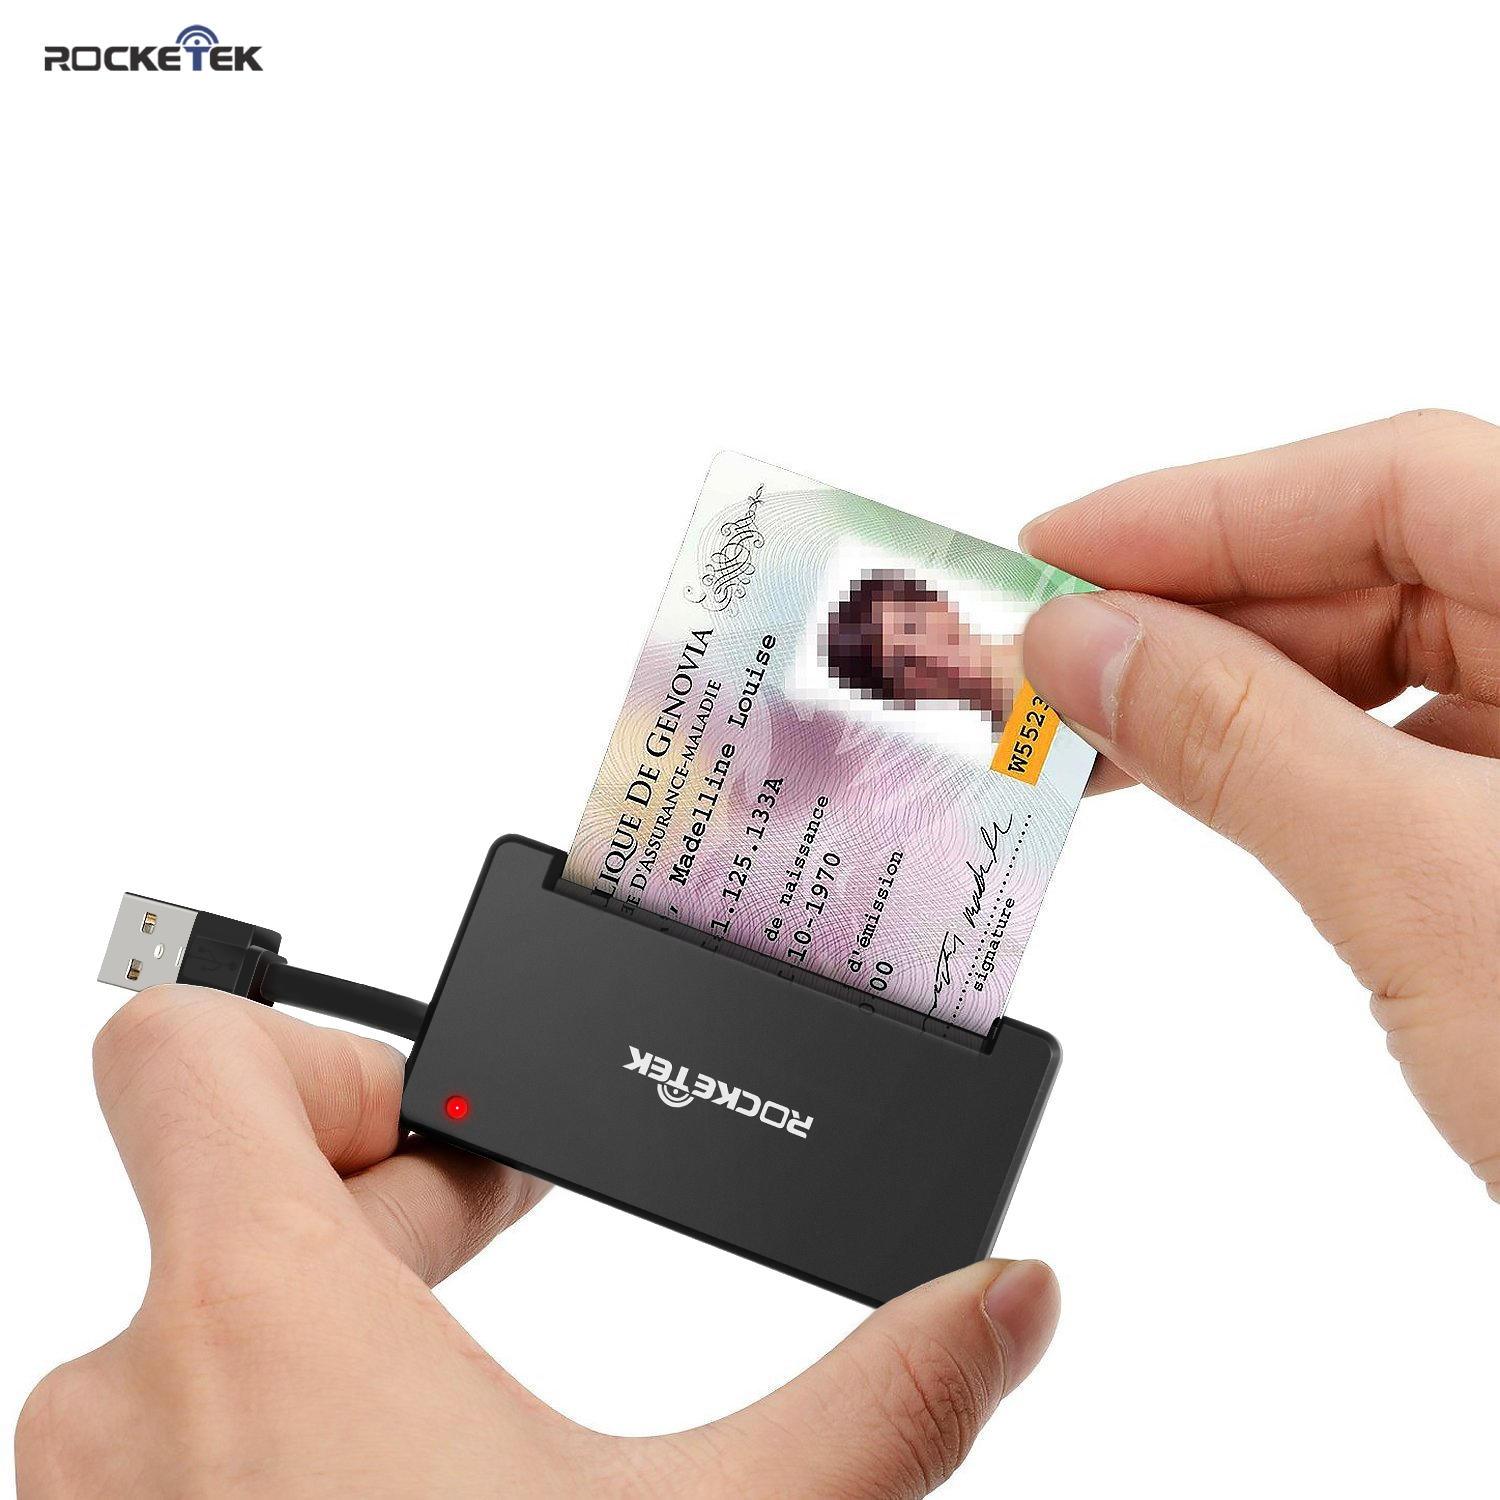 Rocketek USB 2.0 Smart Card Reader Memory For ID Bank EMV Electronic DNIE Dni Citizen Sim Cloner Connector Adapter PC Computer